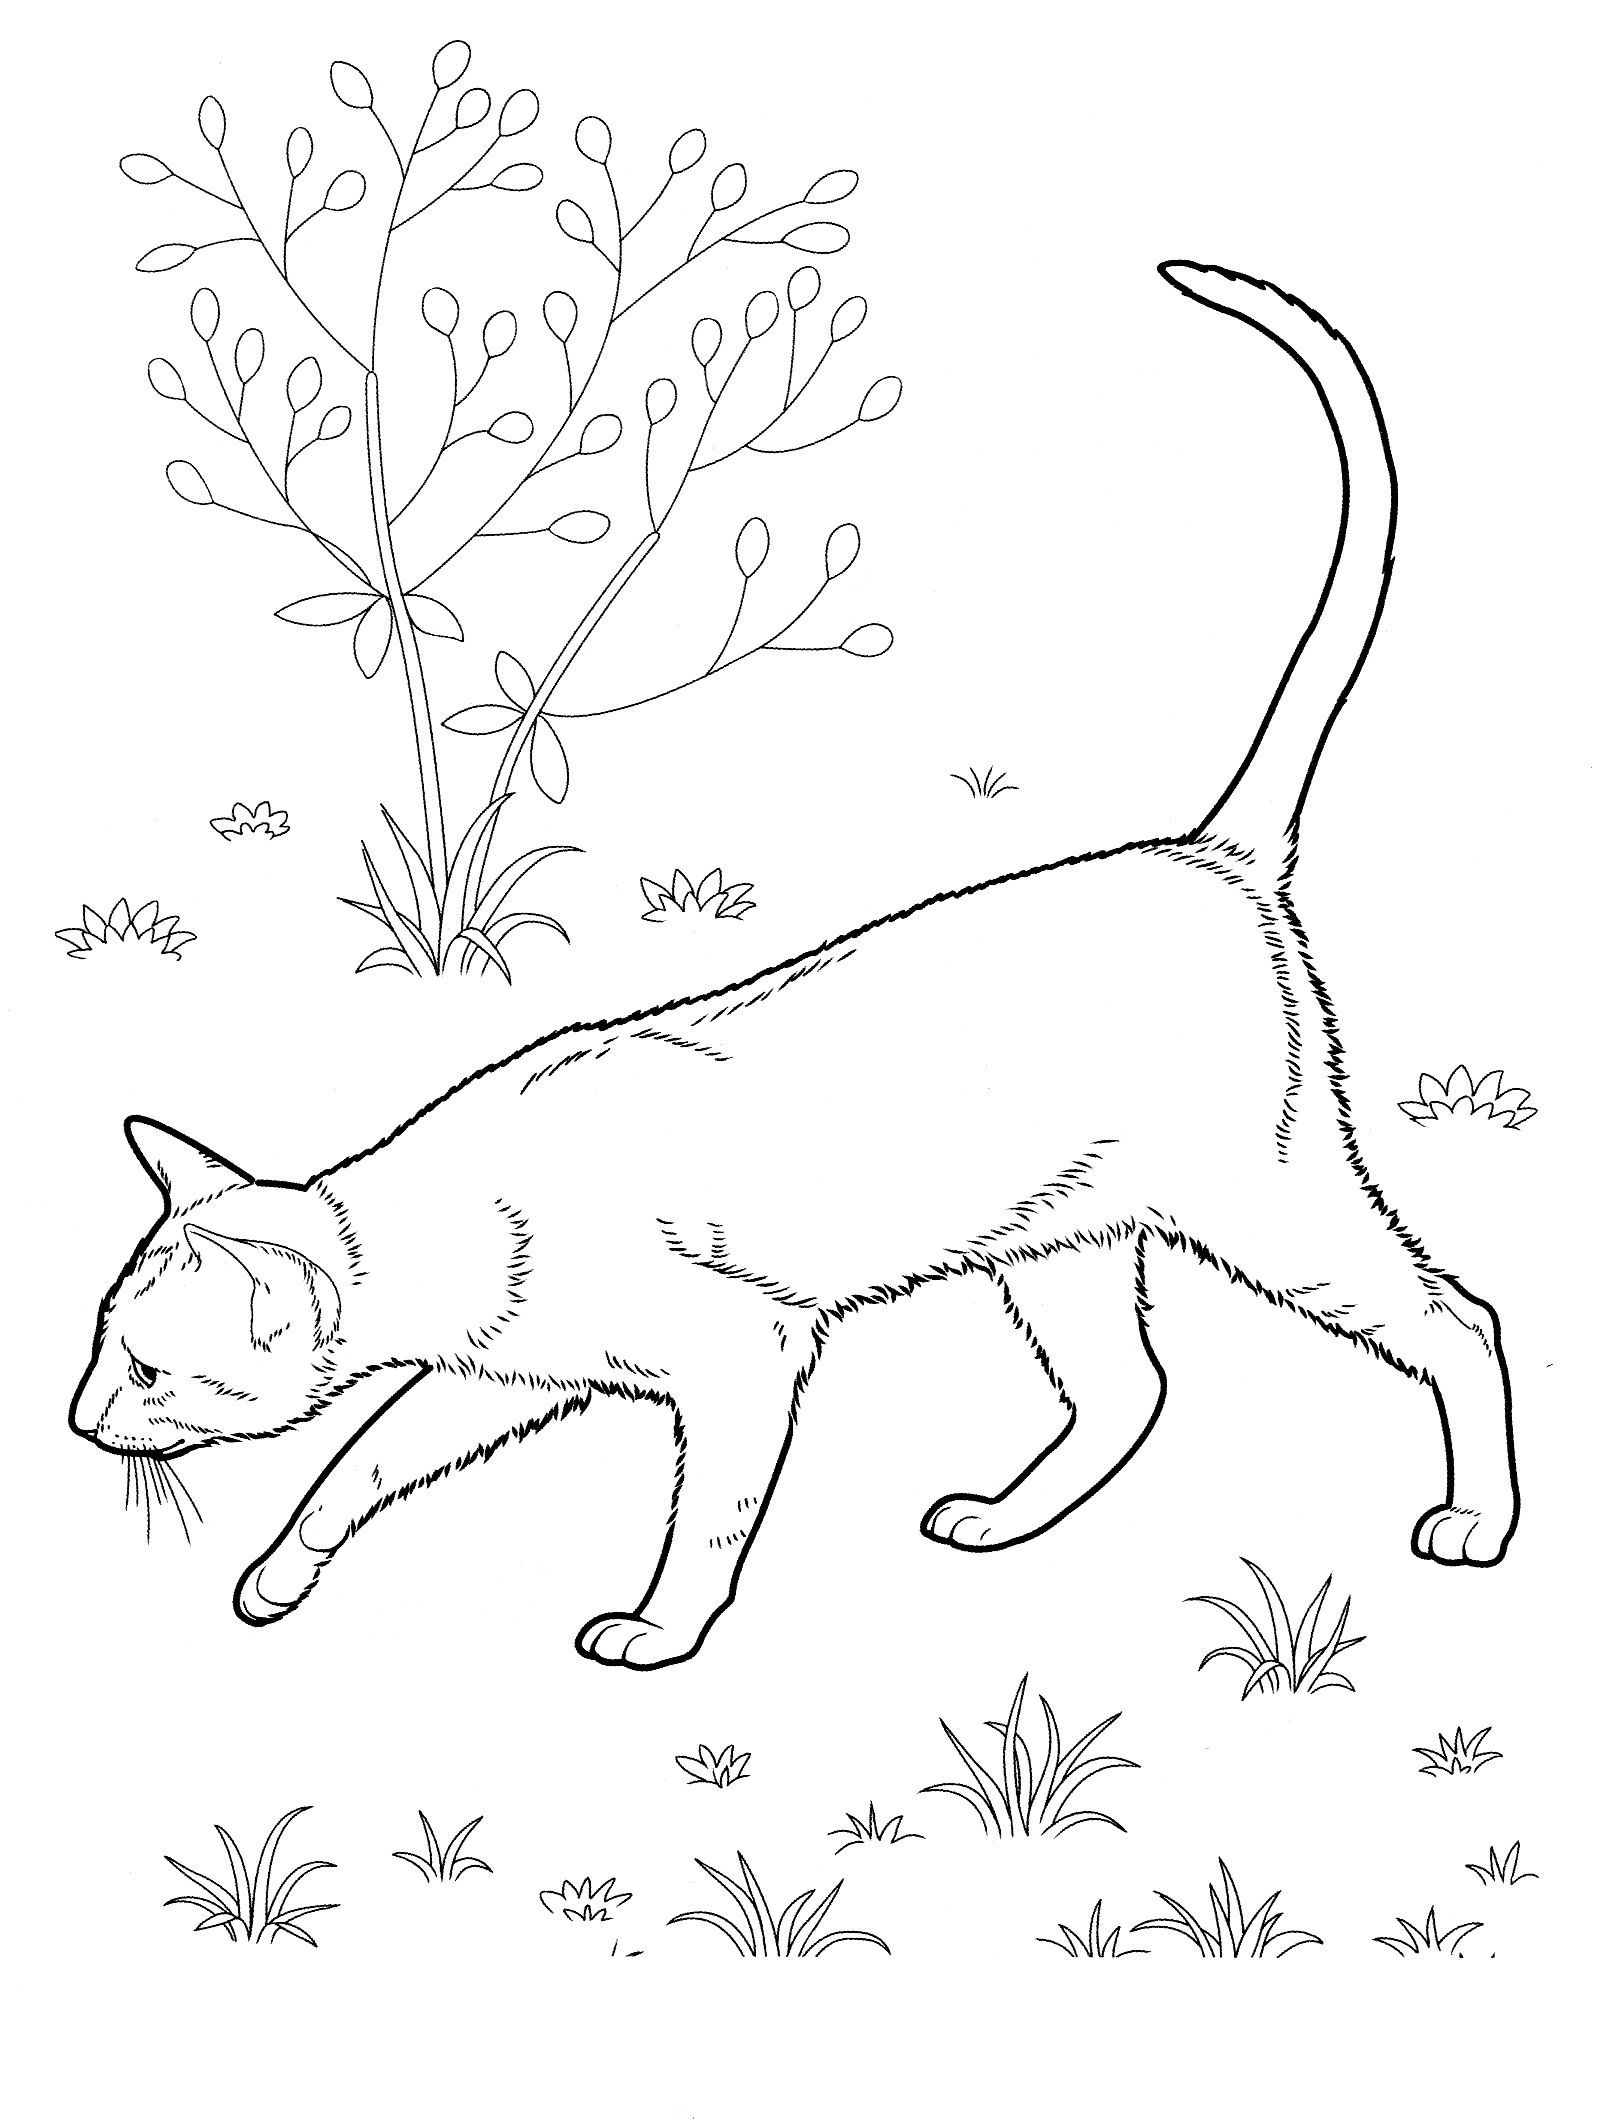 Cat 31 Cats Coloring Pages For Teens And Adults Cat Coloring Page Cat Coloring Book Free Coloring Pages